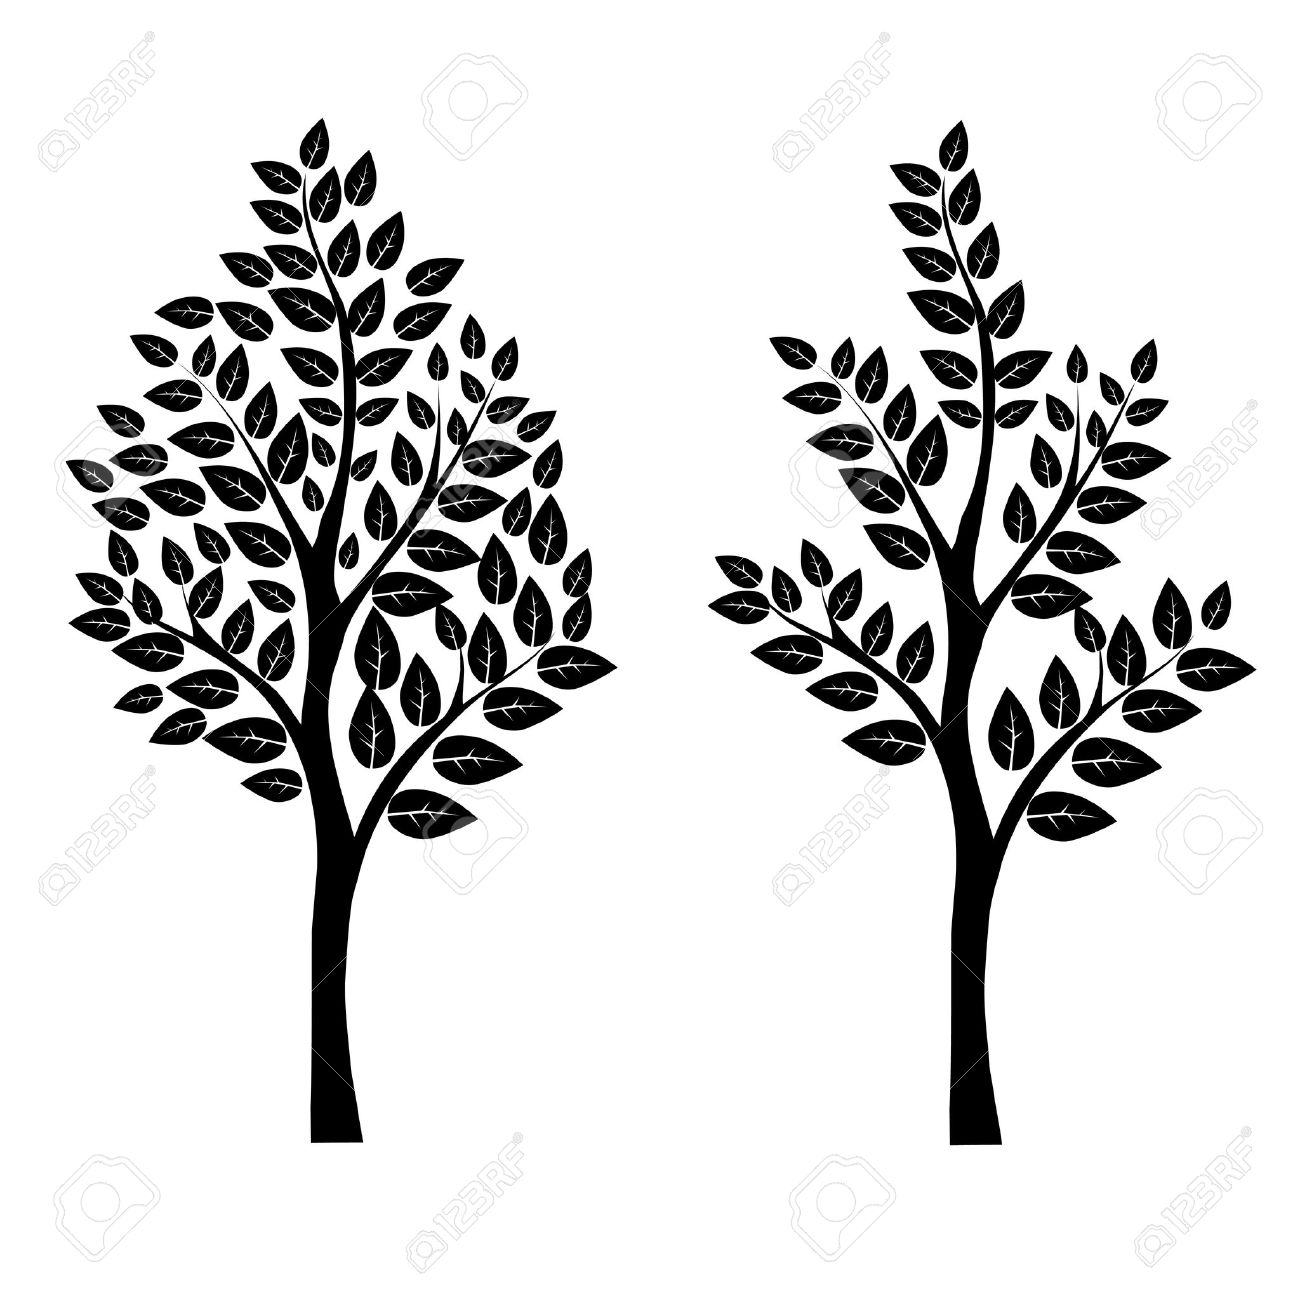 black tree vector art eps 10 royalty free cliparts vectors and rh 123rf com tree vector png tree vector art